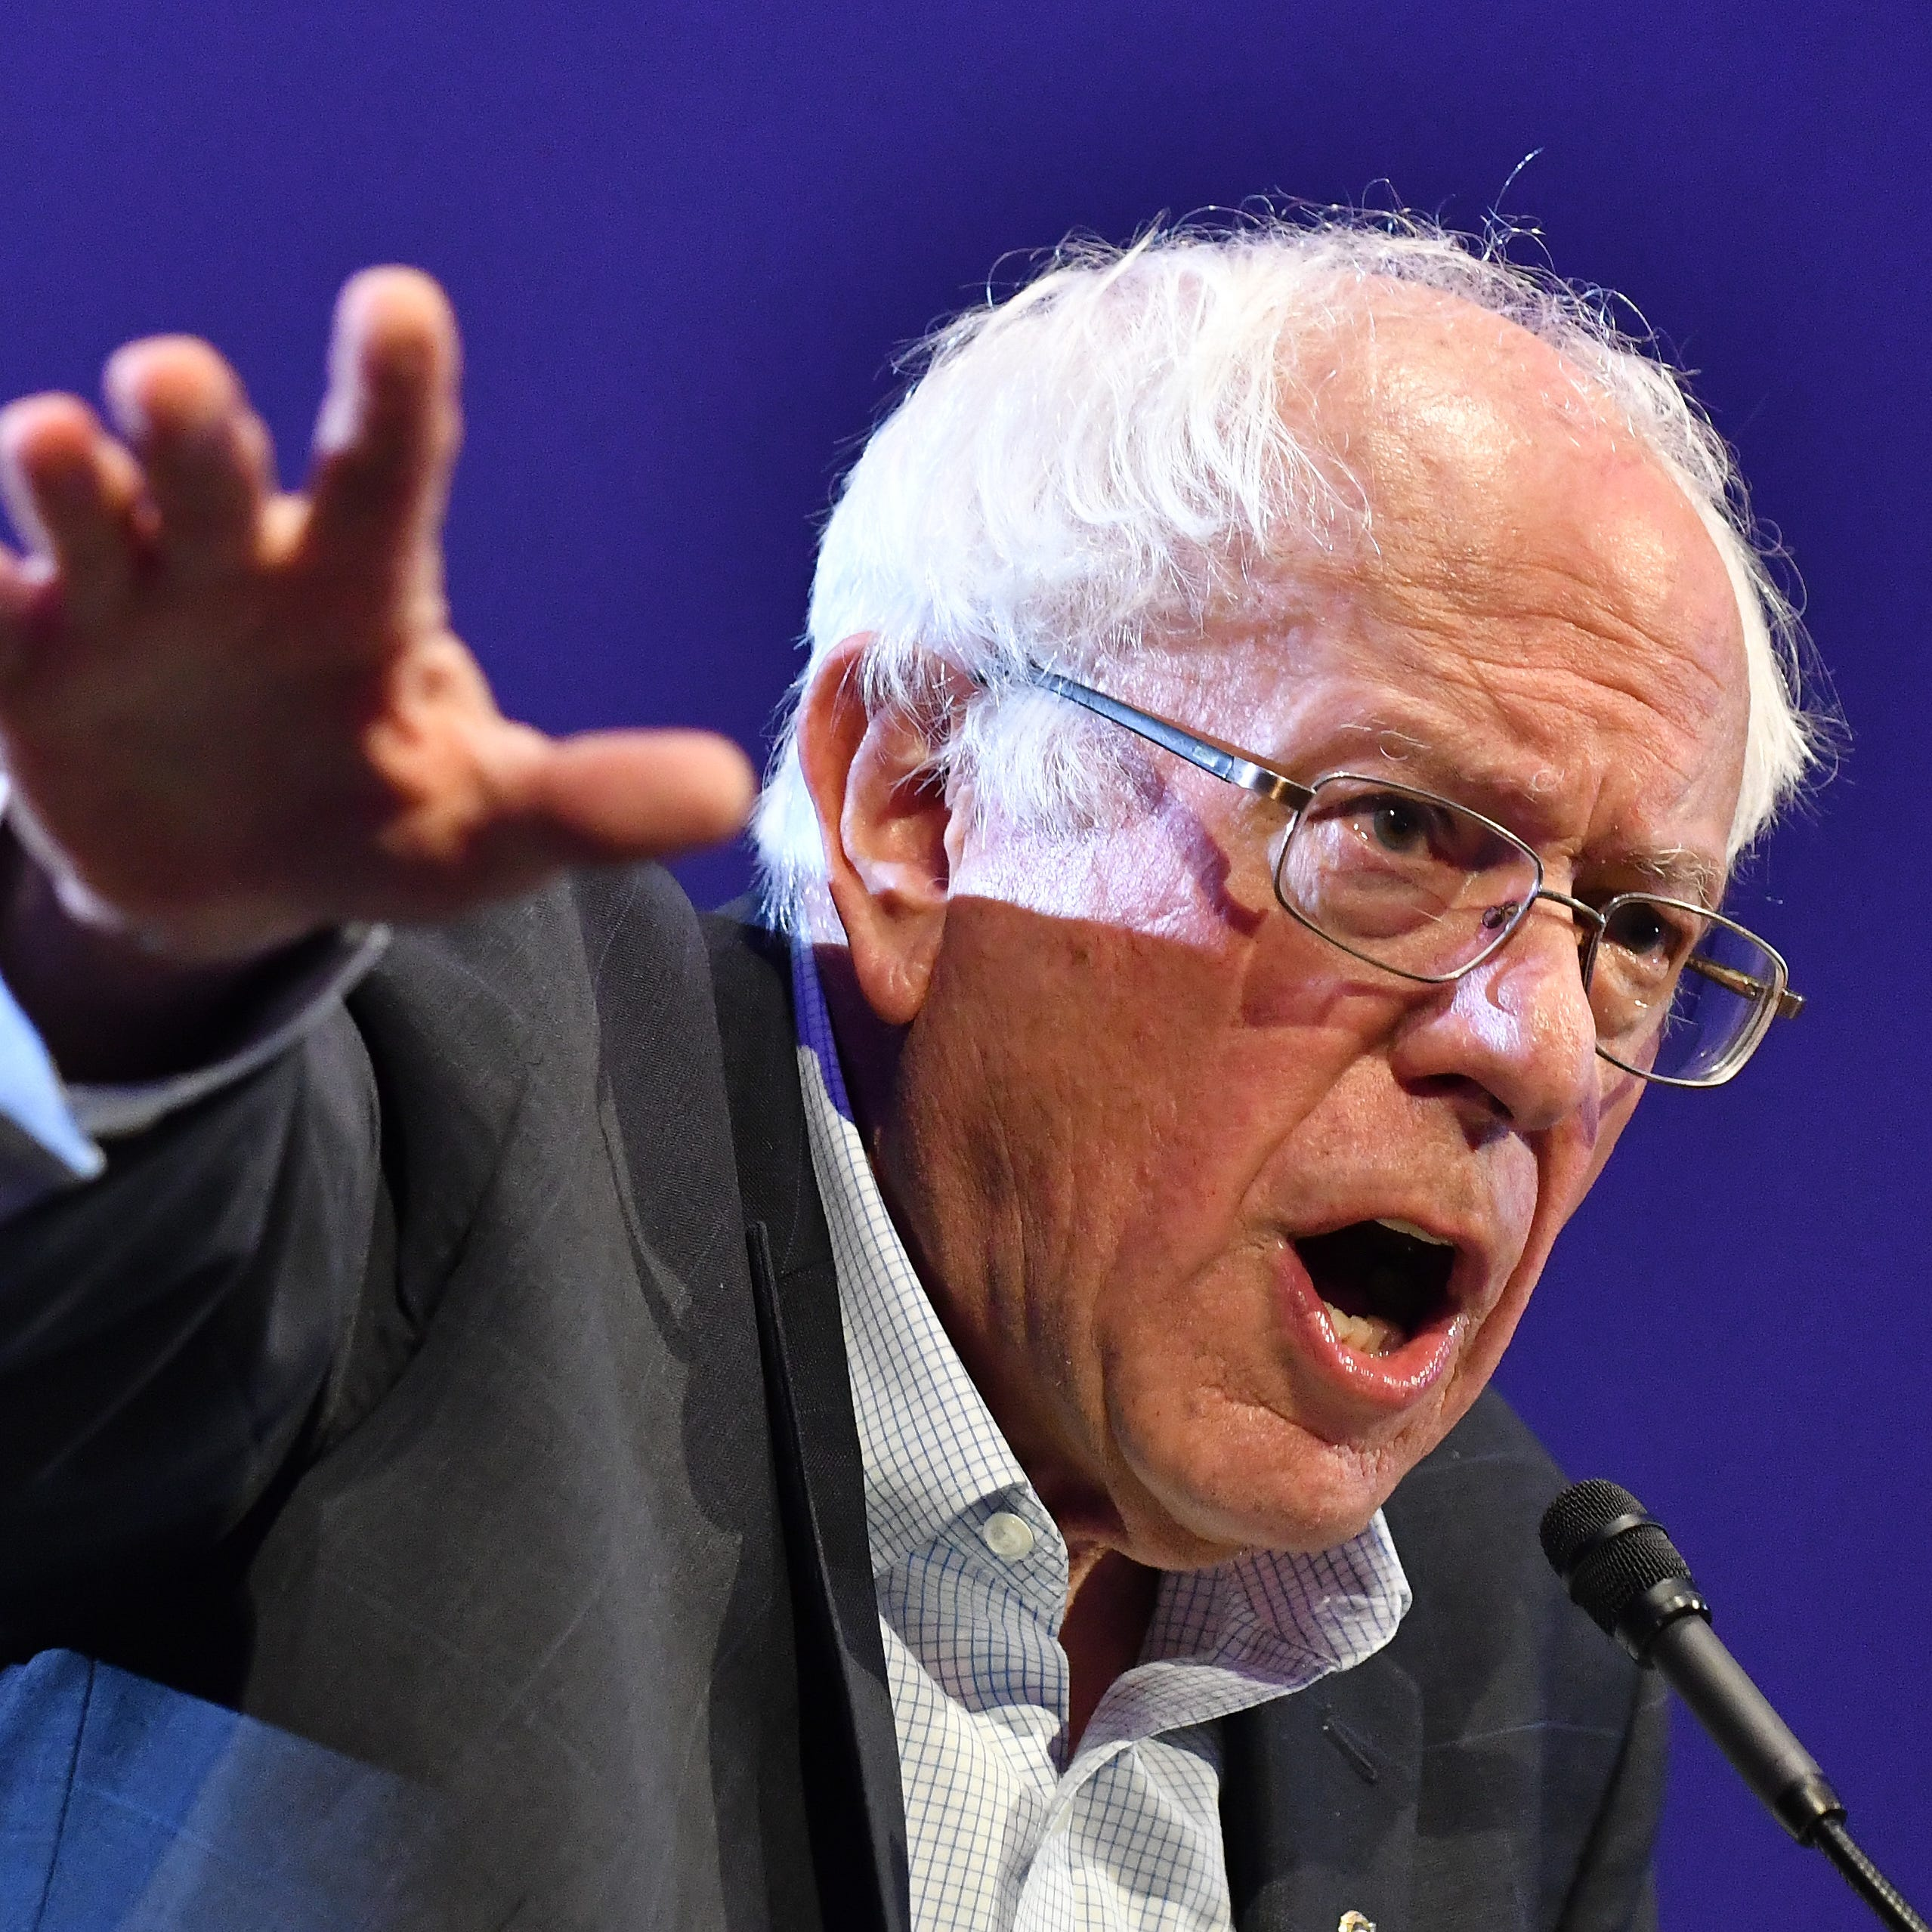 Opinion: Bernie Sanders would spell disaster for America